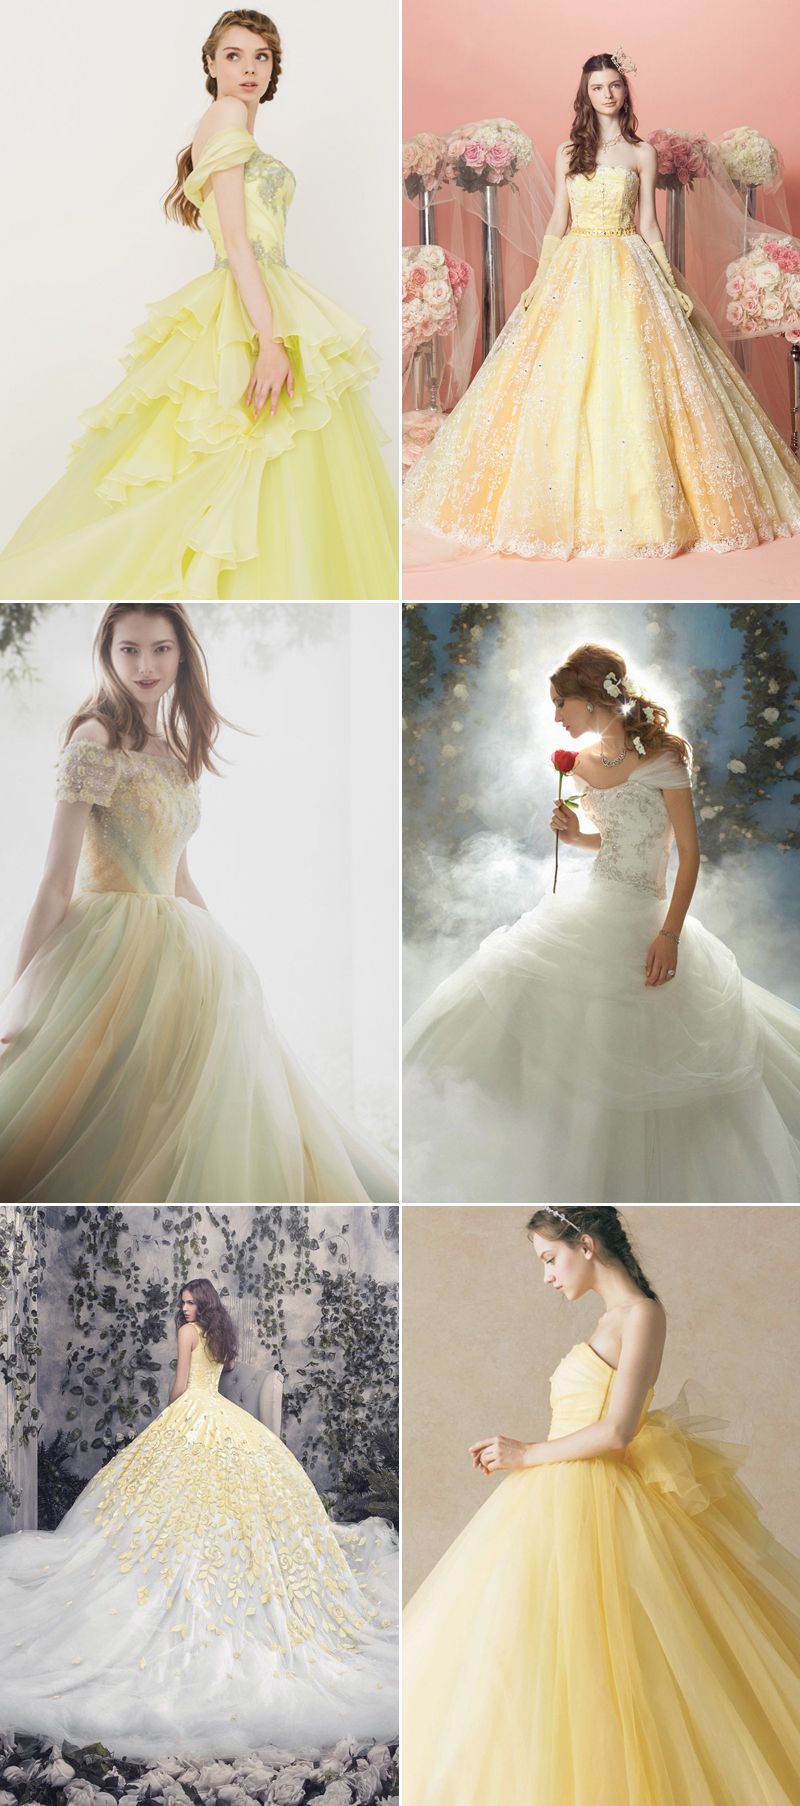 Beauty And The Beast Bridesmaid Dresses: 34 Magical Ideas For A Beauty And The Beast Wedding